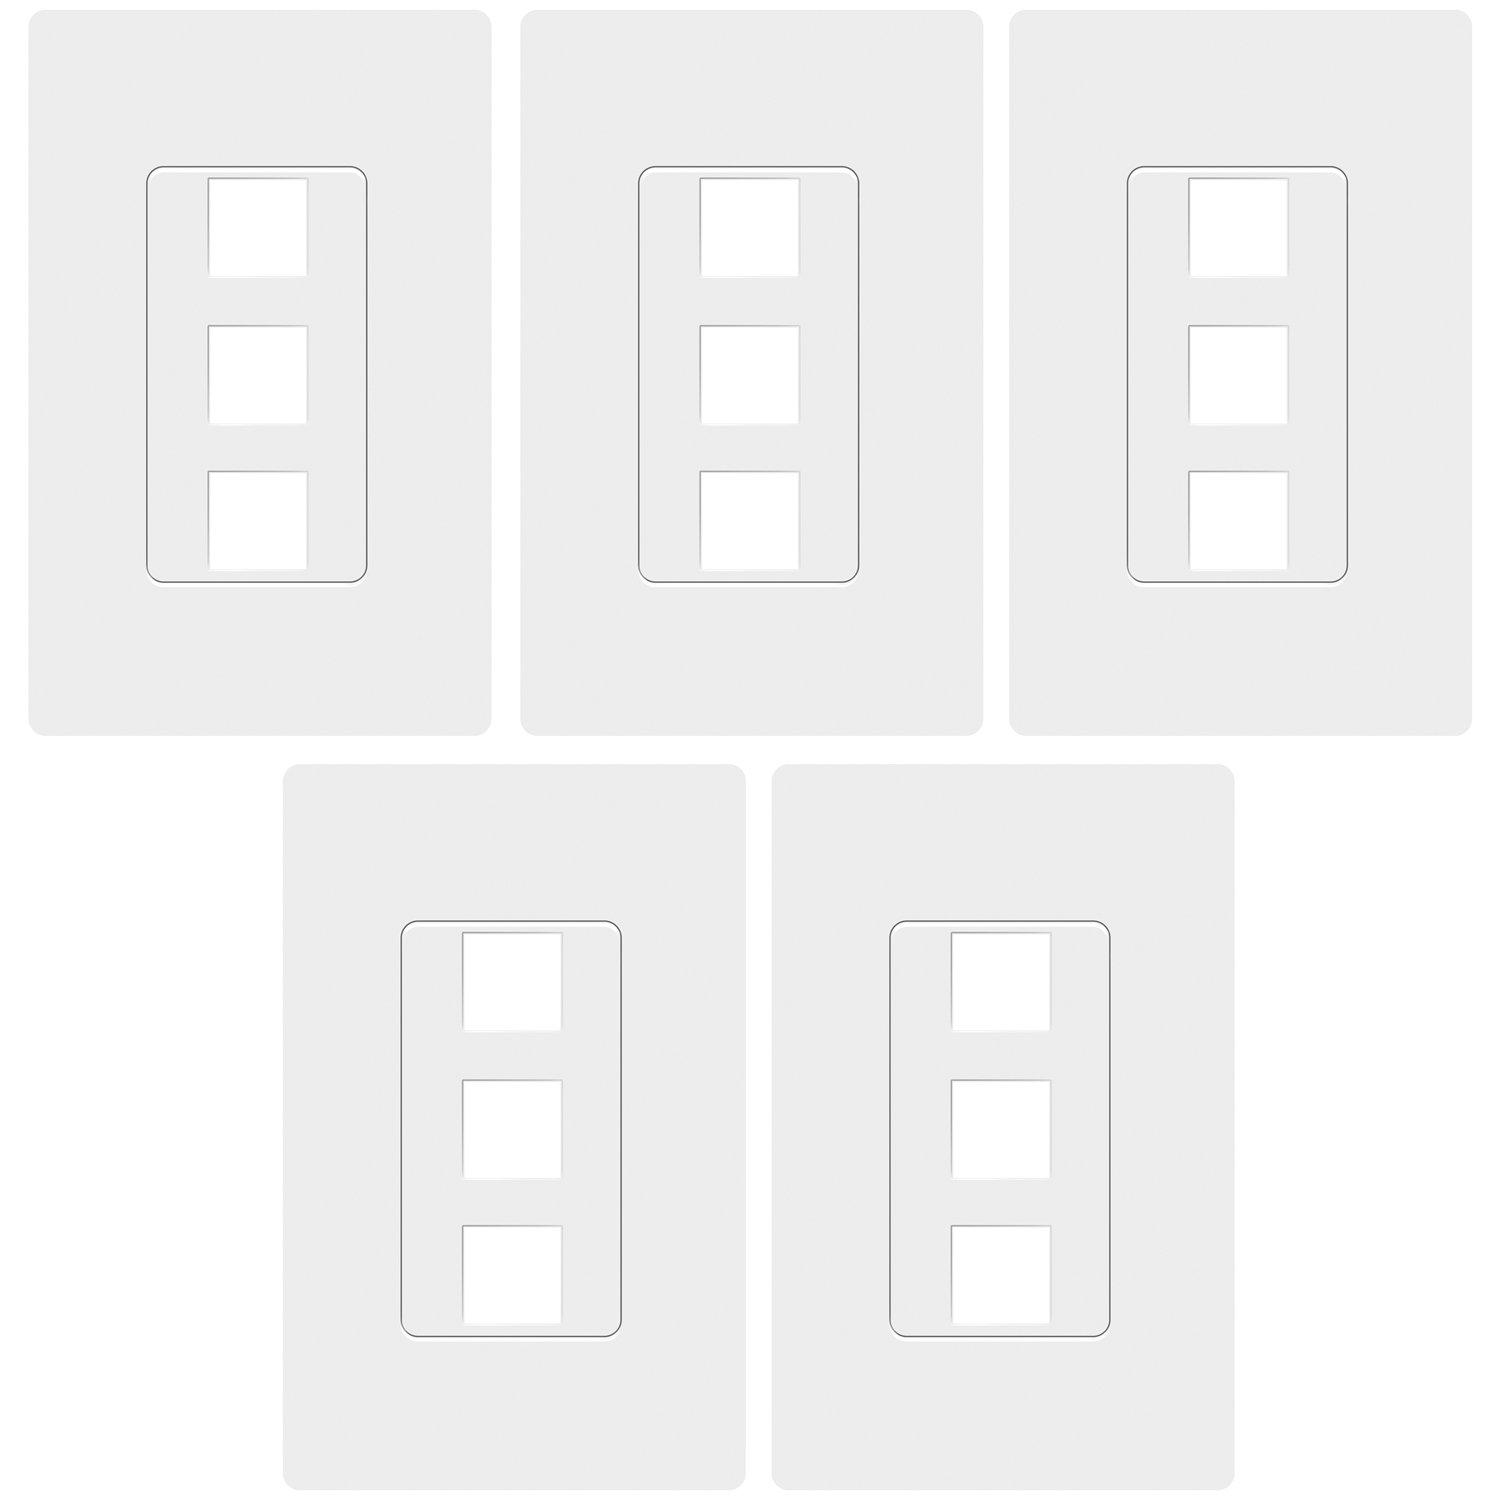 TOPGREENER SI8873 (5 Pack)3 Port Keystone Wall Plate, Keystone Jack Wall Plate, Wall Plate Screwless, Cat5e Keystone Jack Cat6 Compatible, Child Safe, Unbreakable, White